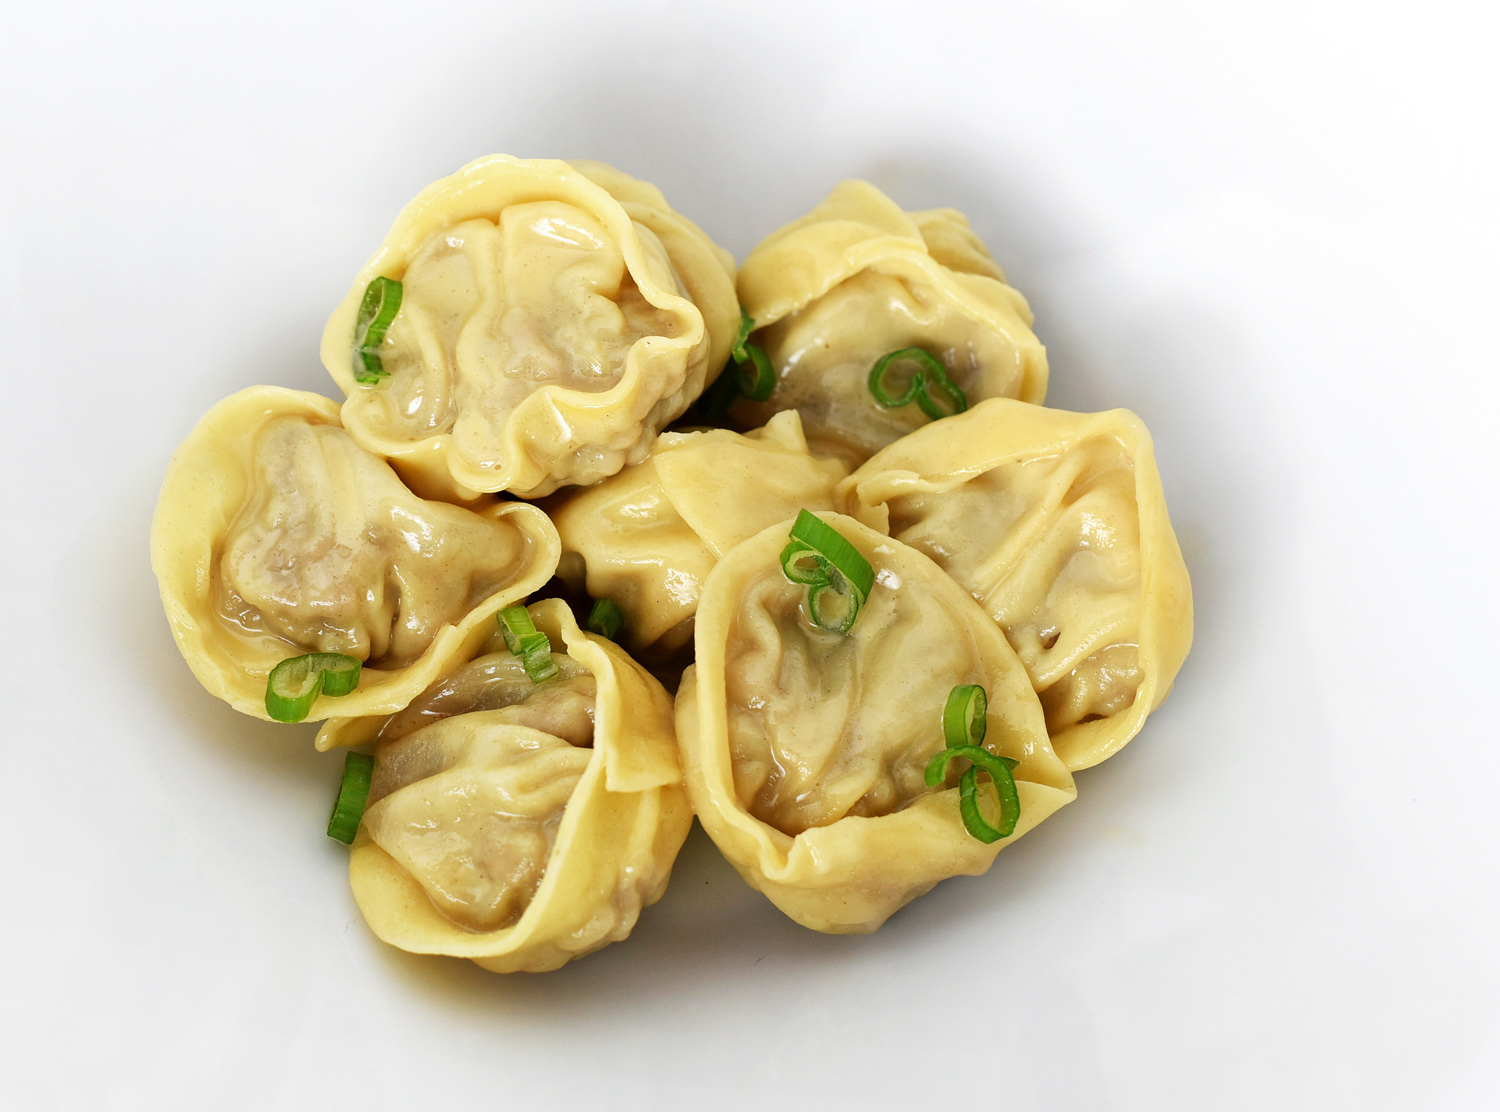 Russian Food - Pelmeni, Siberian Meat Dumplings